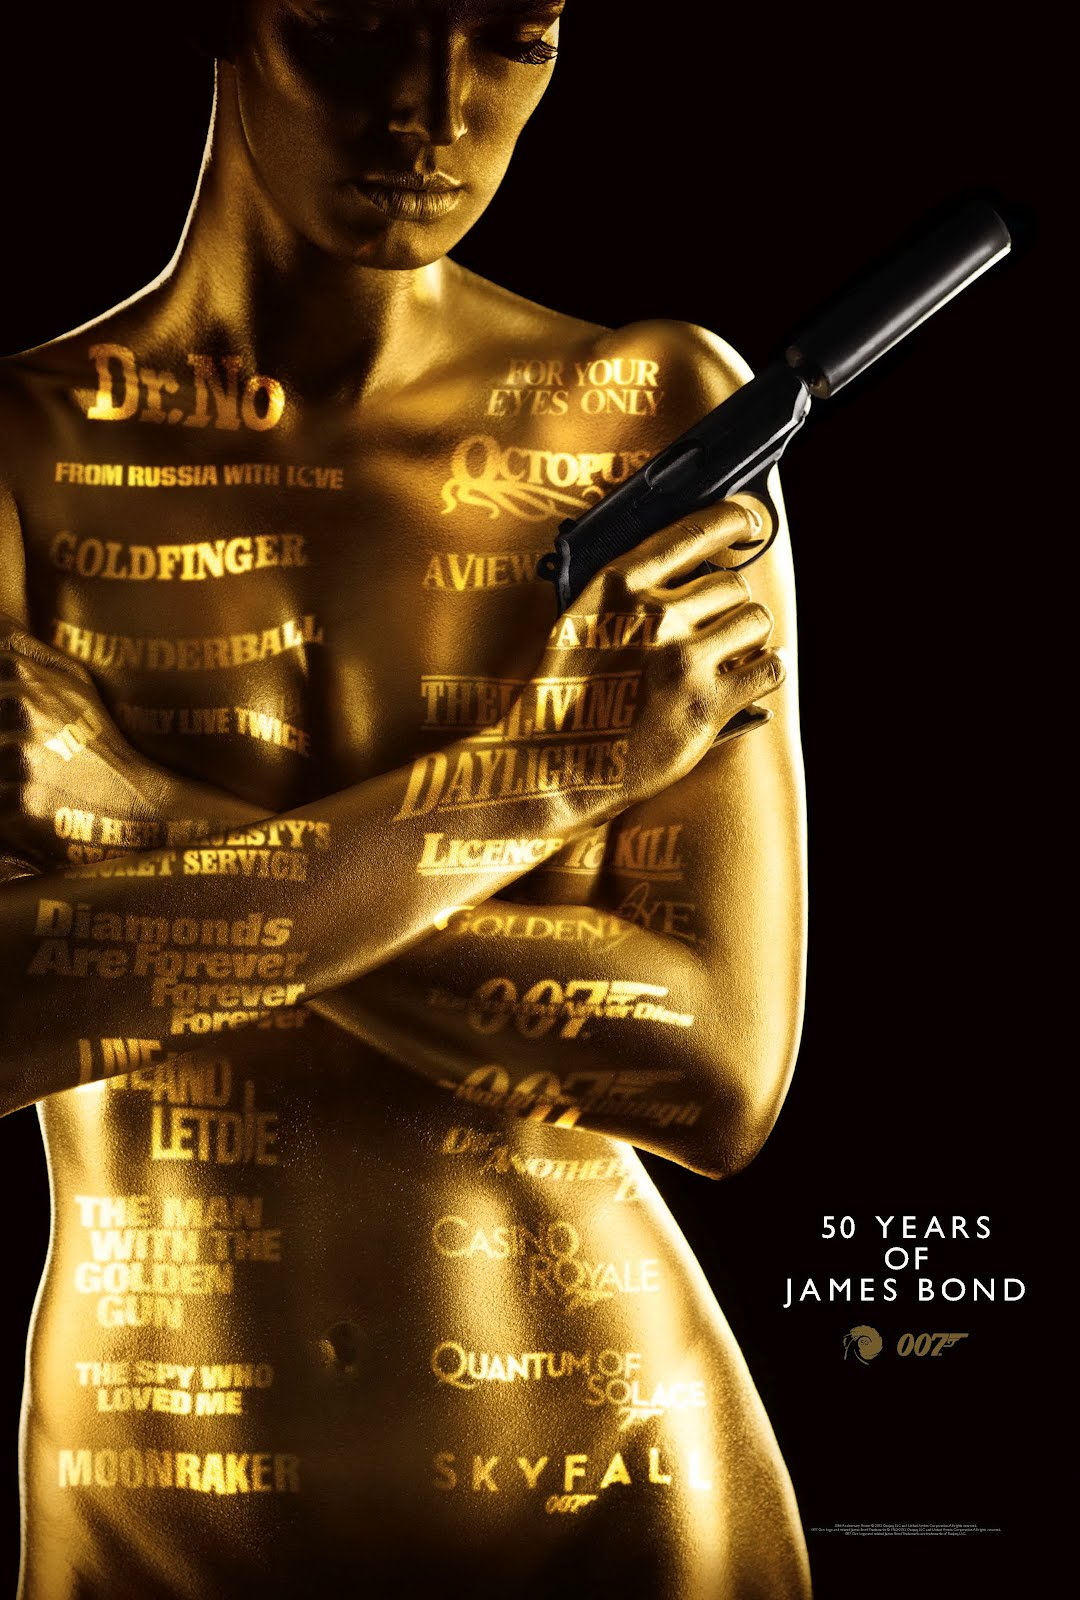 http://4.bp.blogspot.com/-cHmrYp6_fyo/T5IzUIGt7eI/AAAAAAAAIS0/R-hSD_3i2ho/s1600/James_Bond_50th_Anniversary_OS_poster_golden_girl_50_years_of_007.jpg